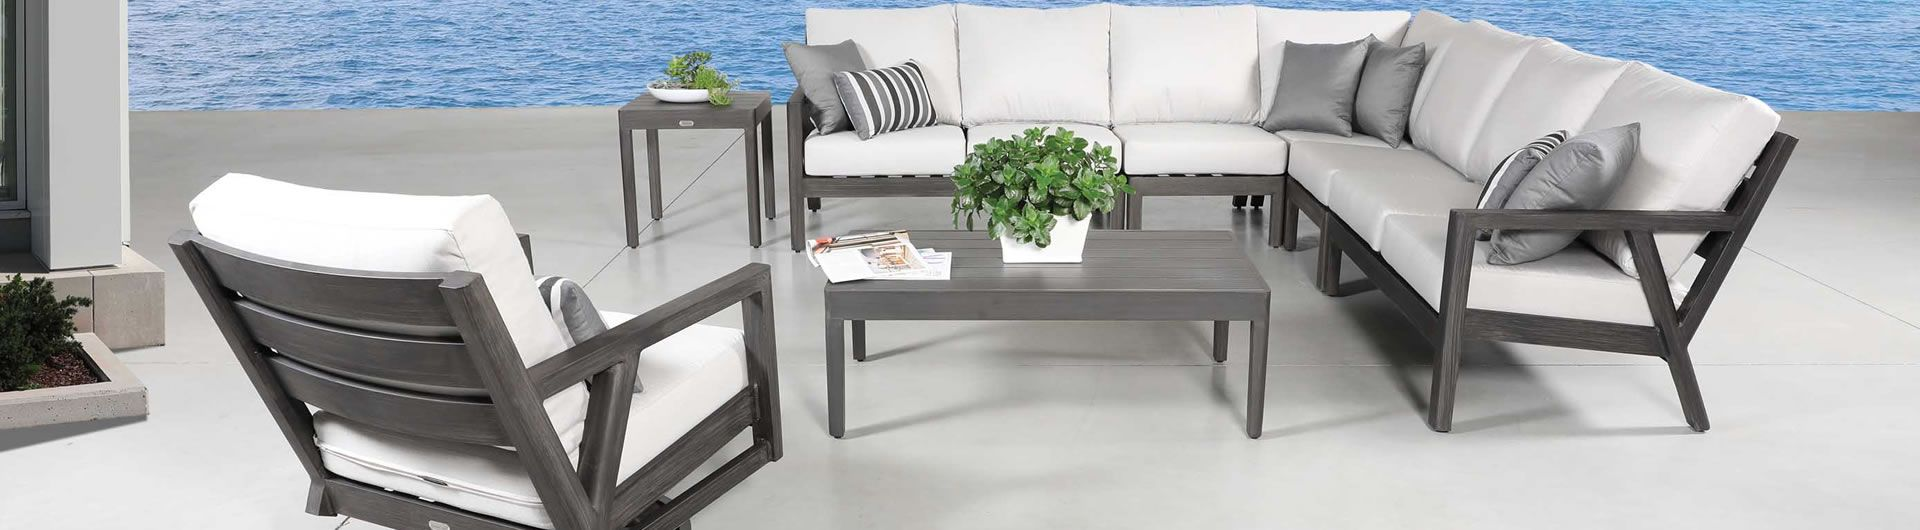 Boardwalk Sectional Collection